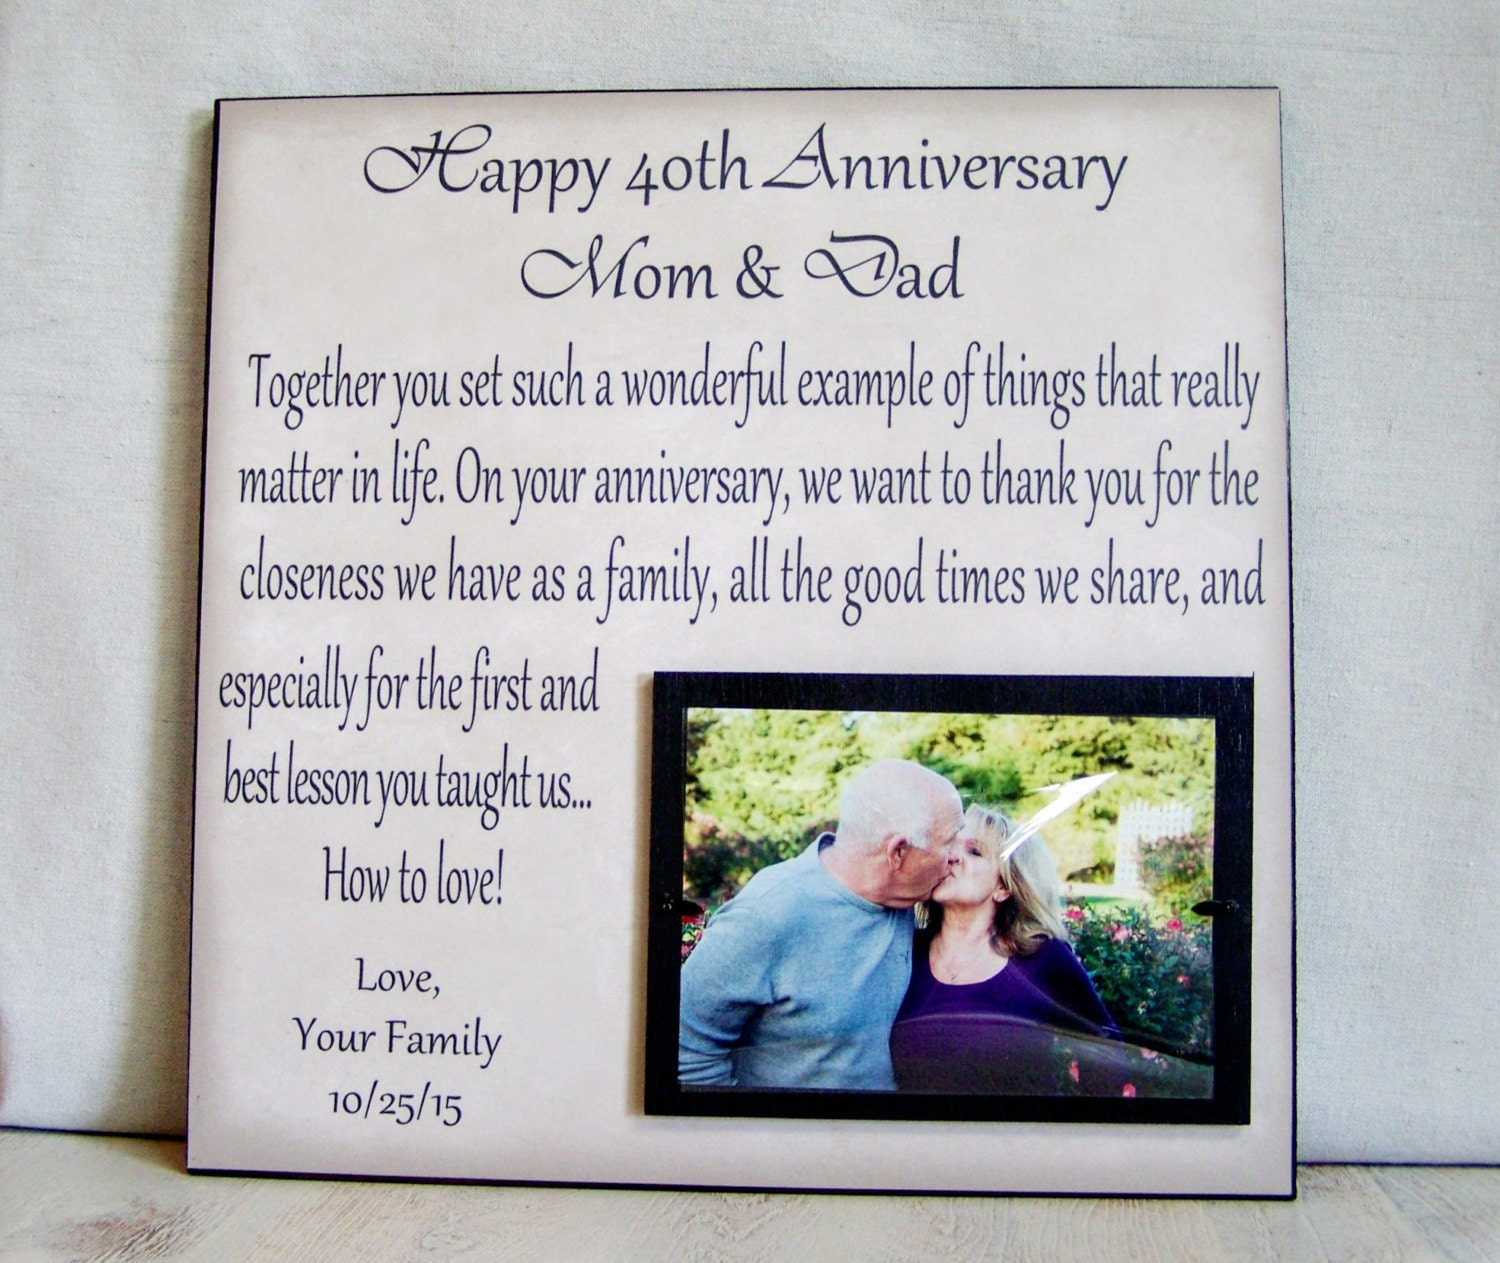 Ideas For 60th Wedding Anniversary Gifts For Parents : Ideas 30th Wedding Anniversary Gift For Parents anniversary picture ...